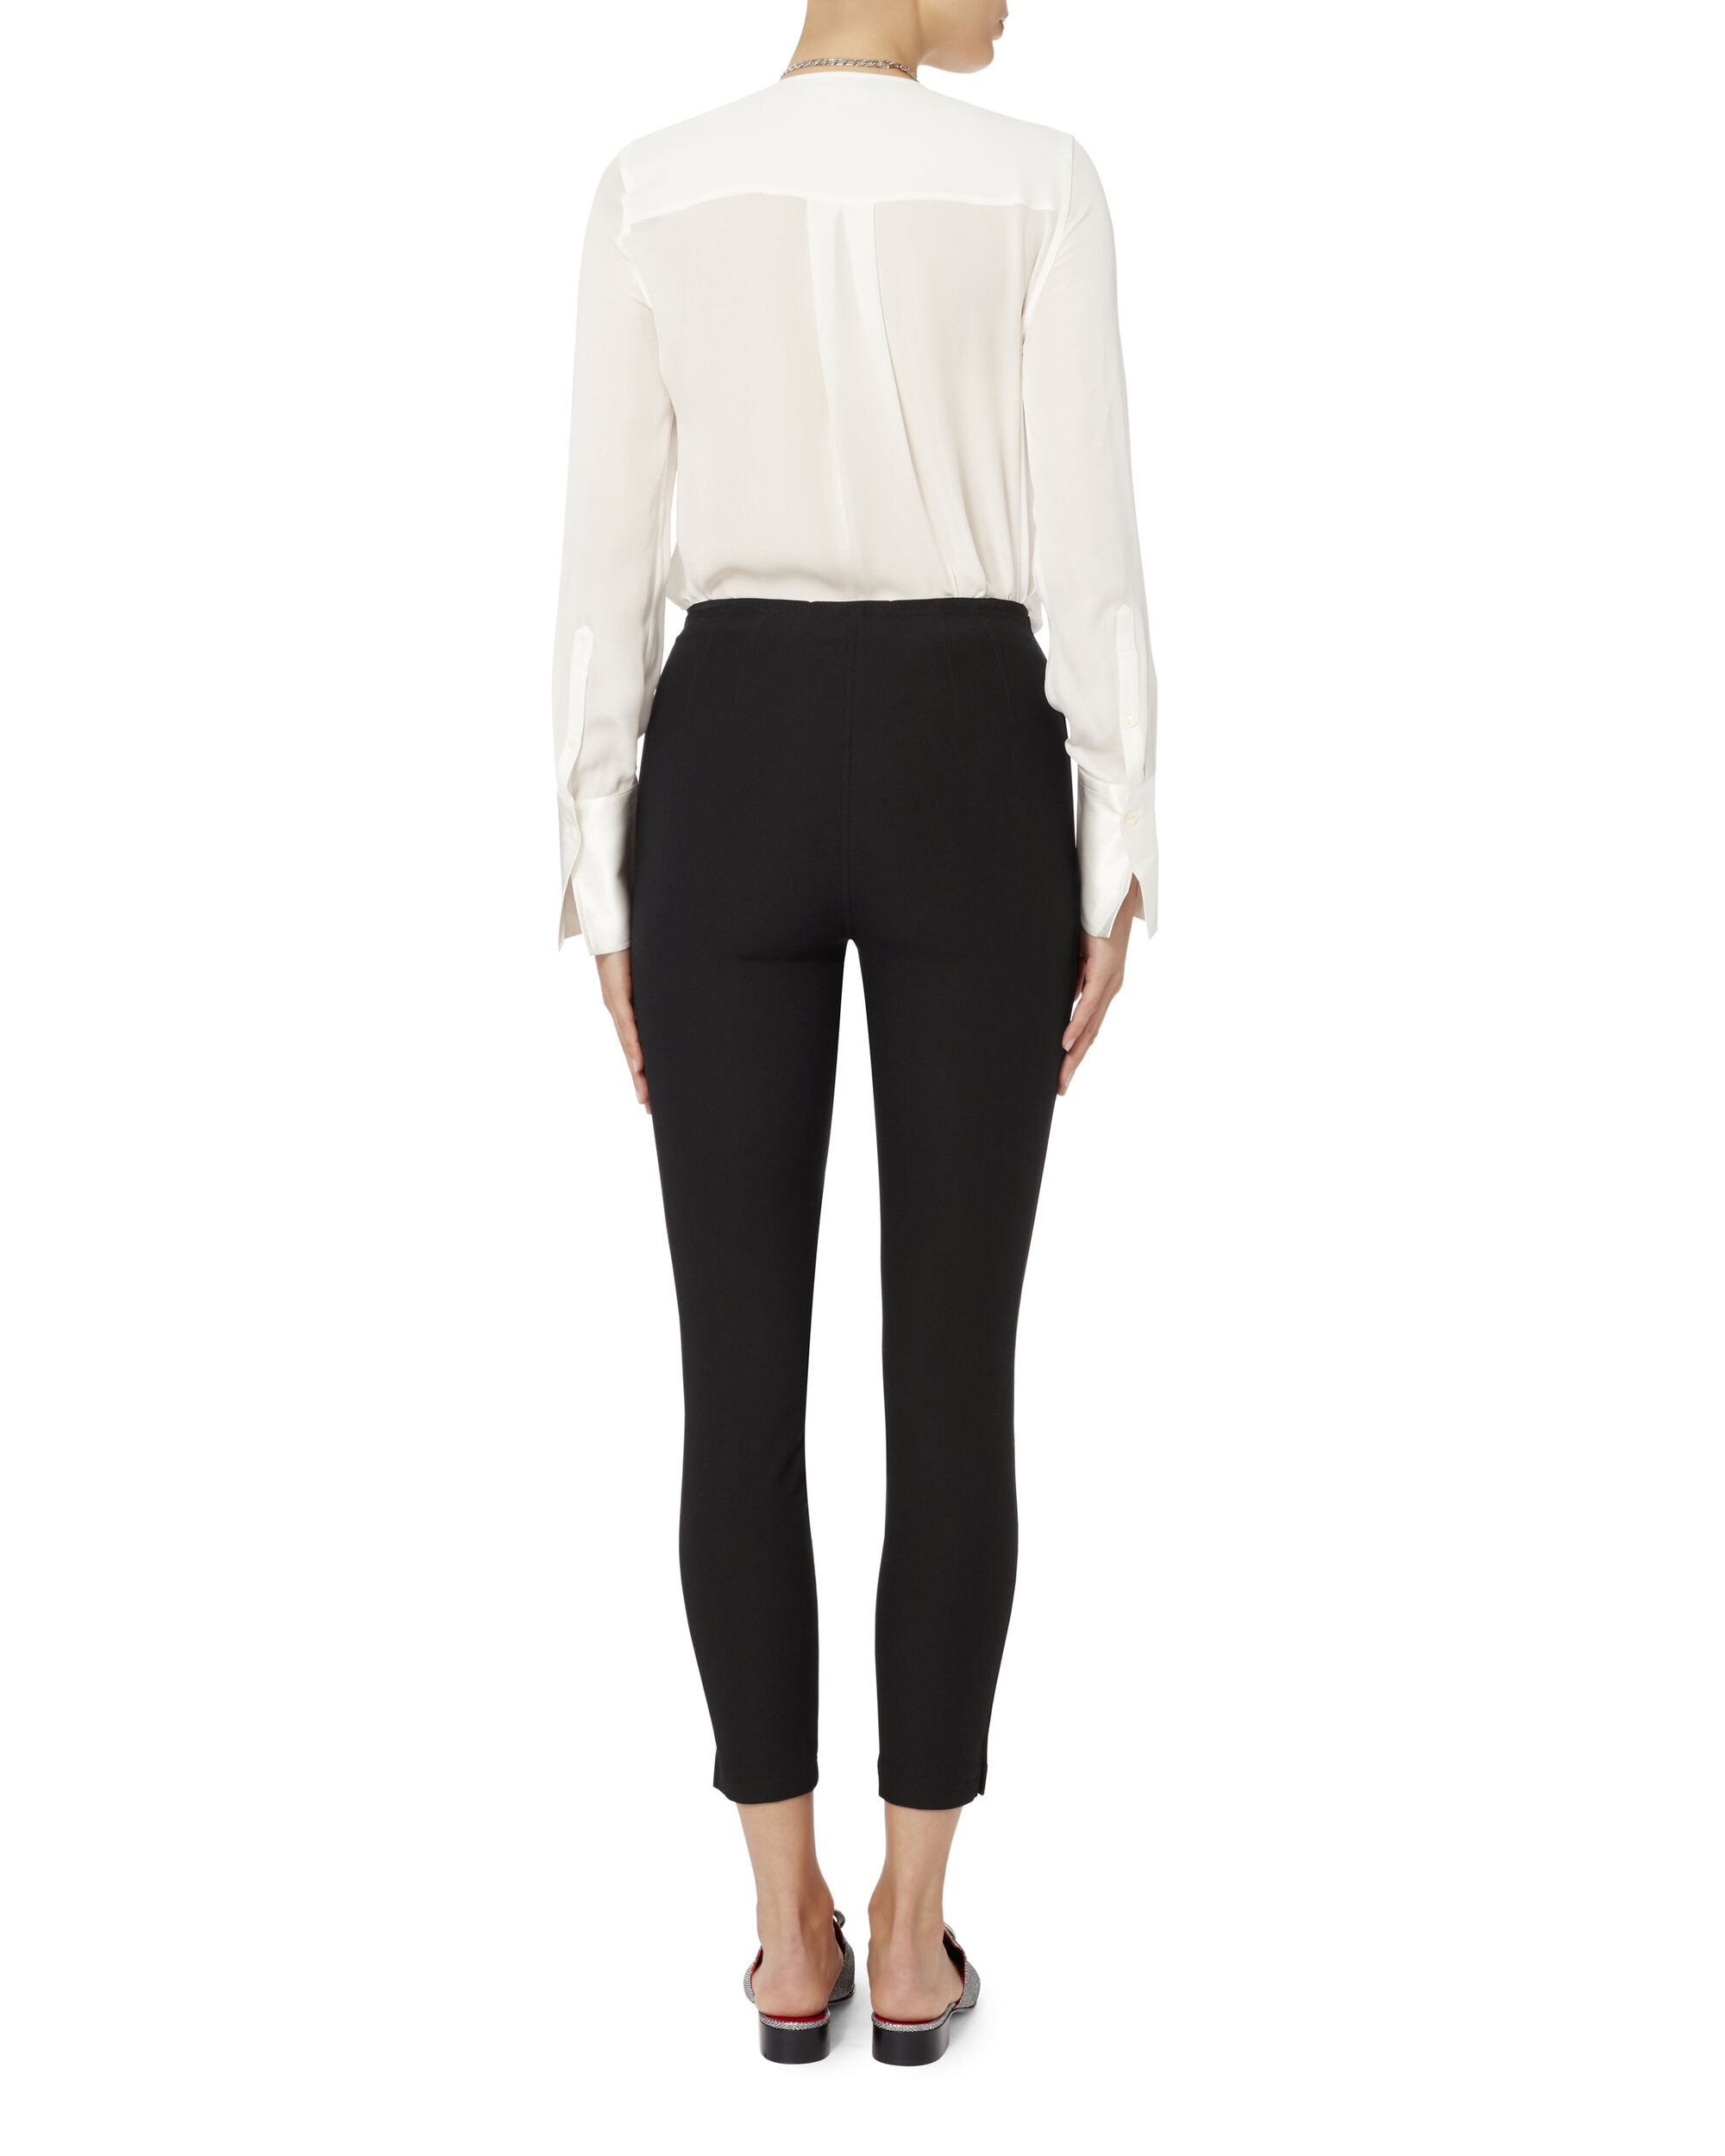 Brody High-Waist Pants, BLACK, hi-res